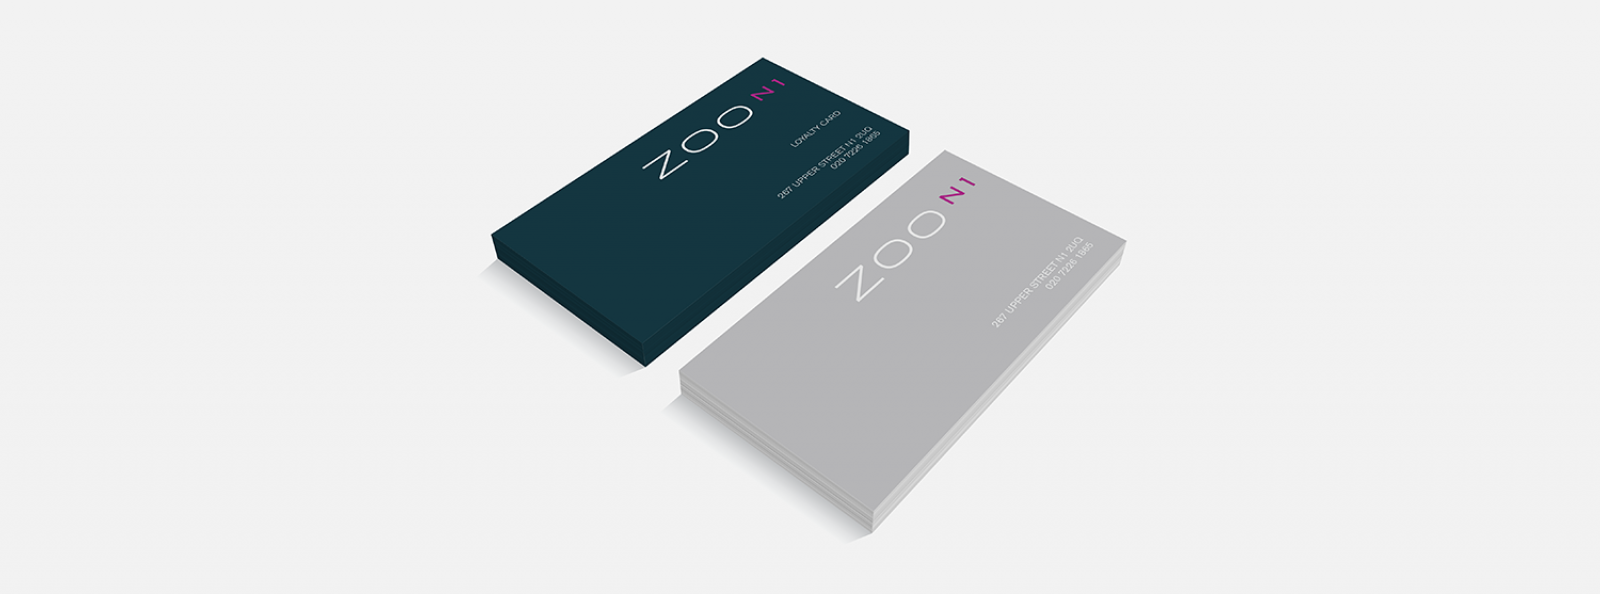 zoon1 cards